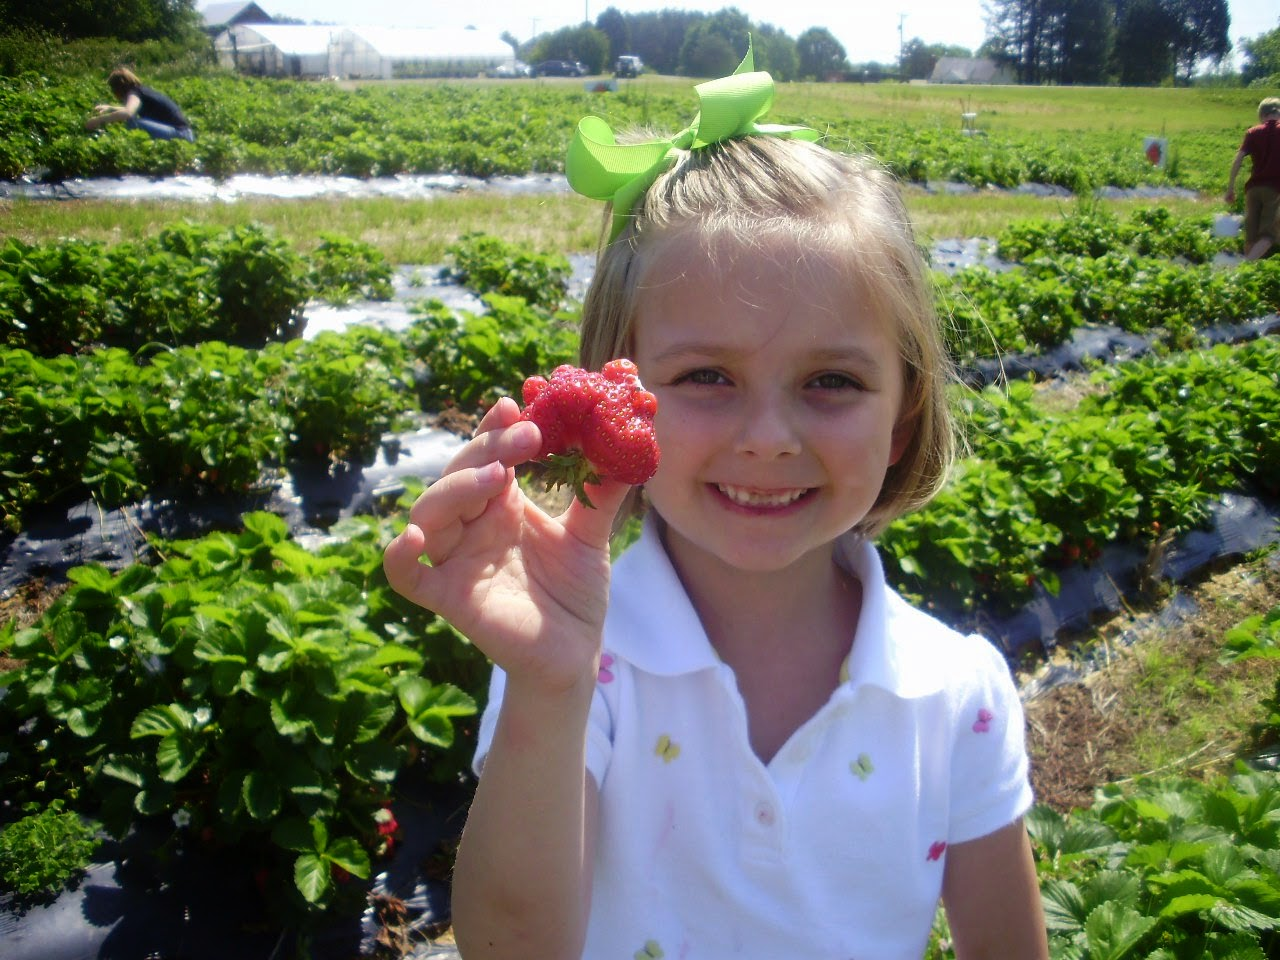 Pick Your Own Strawberries In Southern Virginia